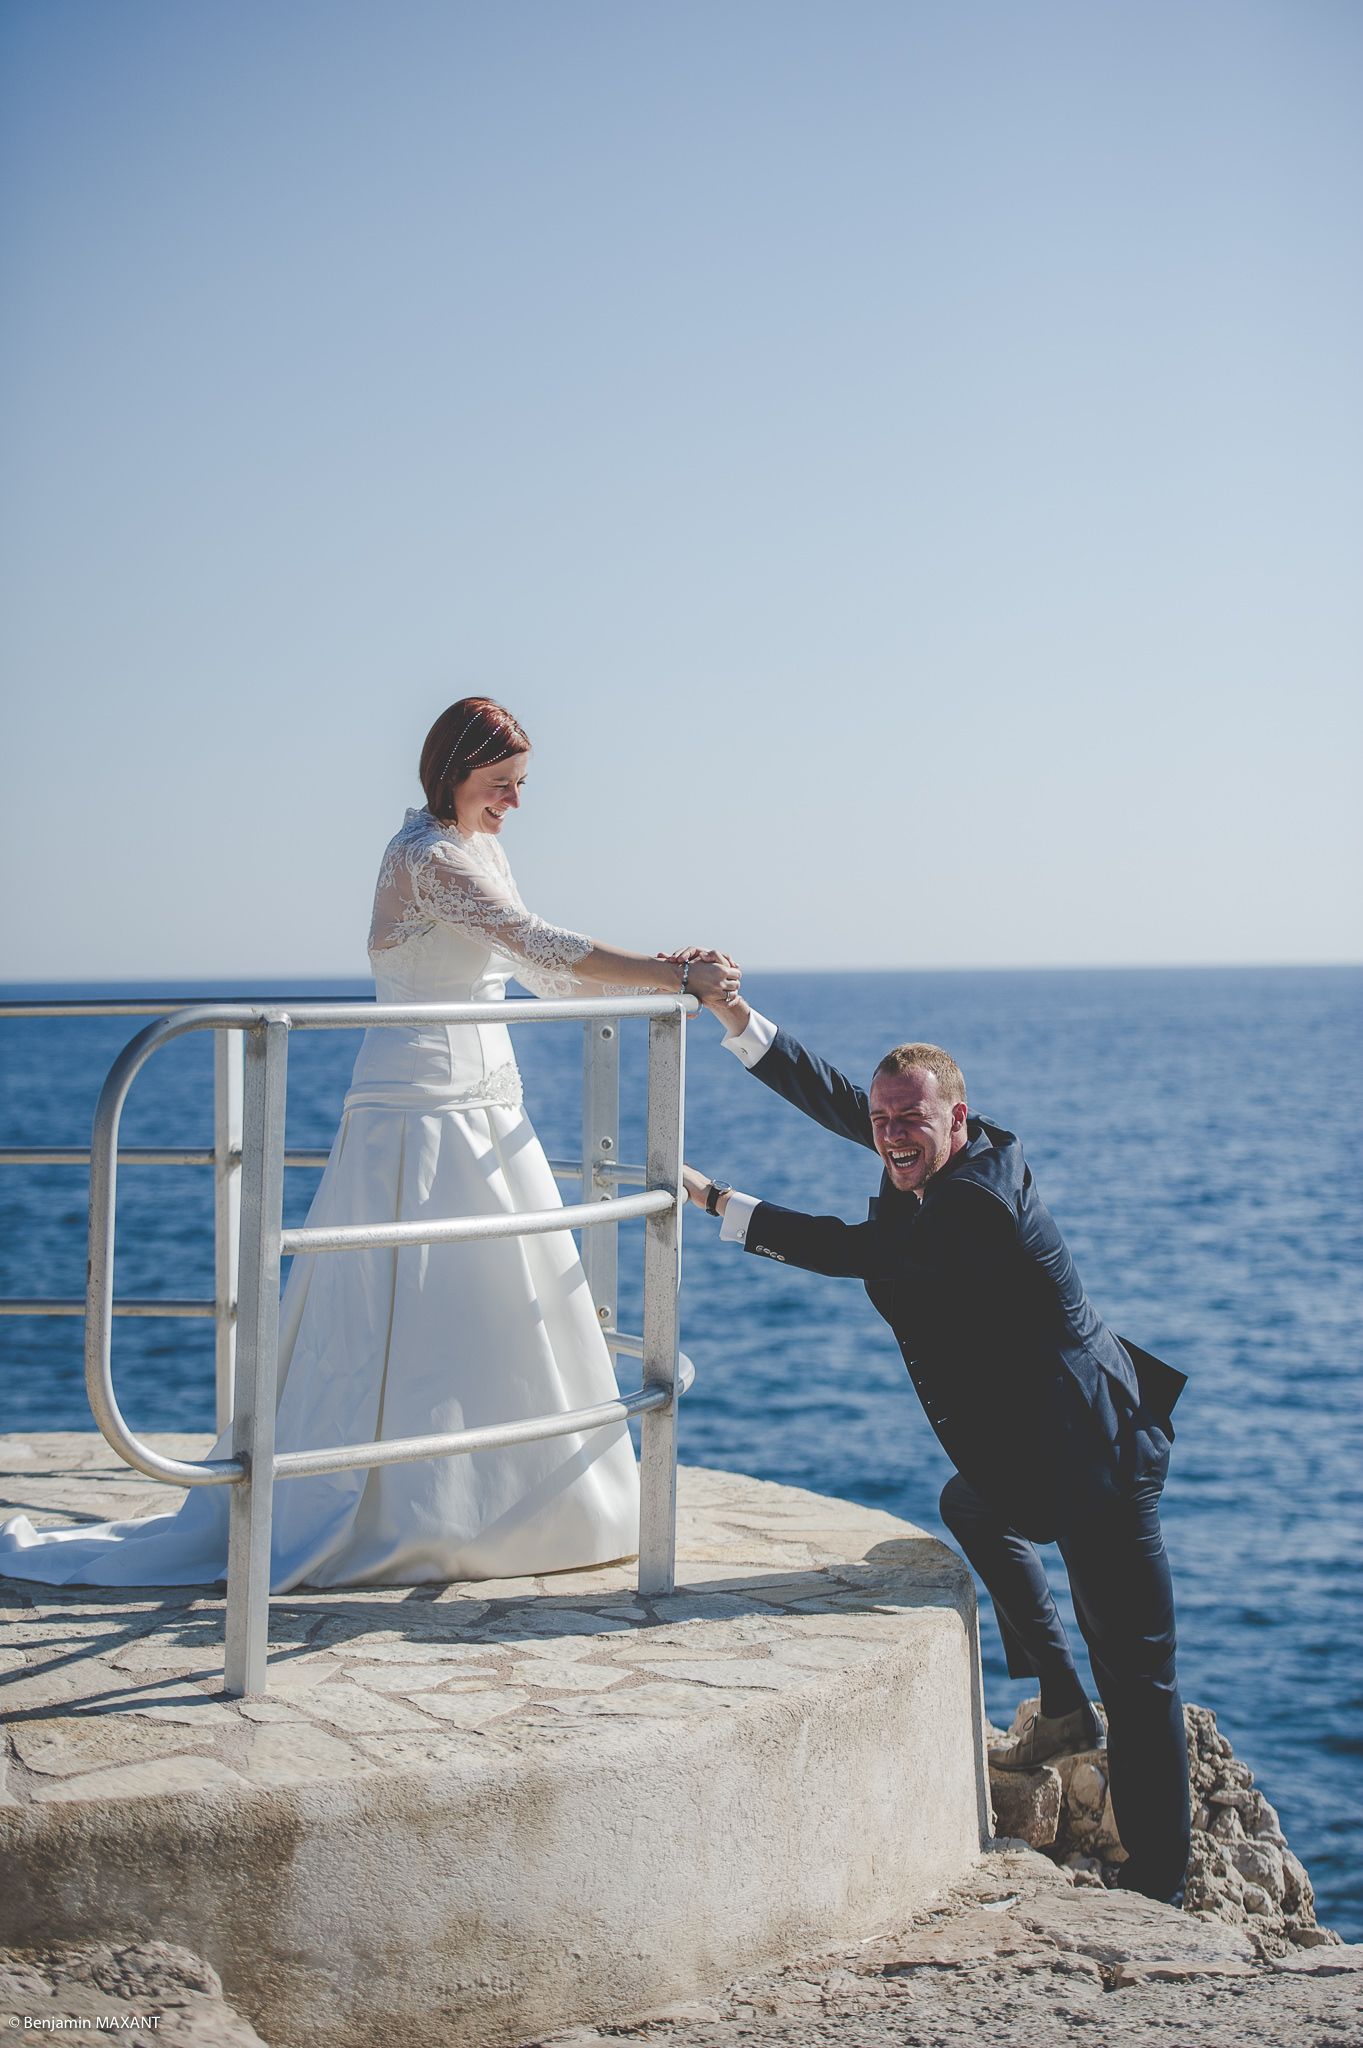 Cap d'Antibes fun engagement photo shoot